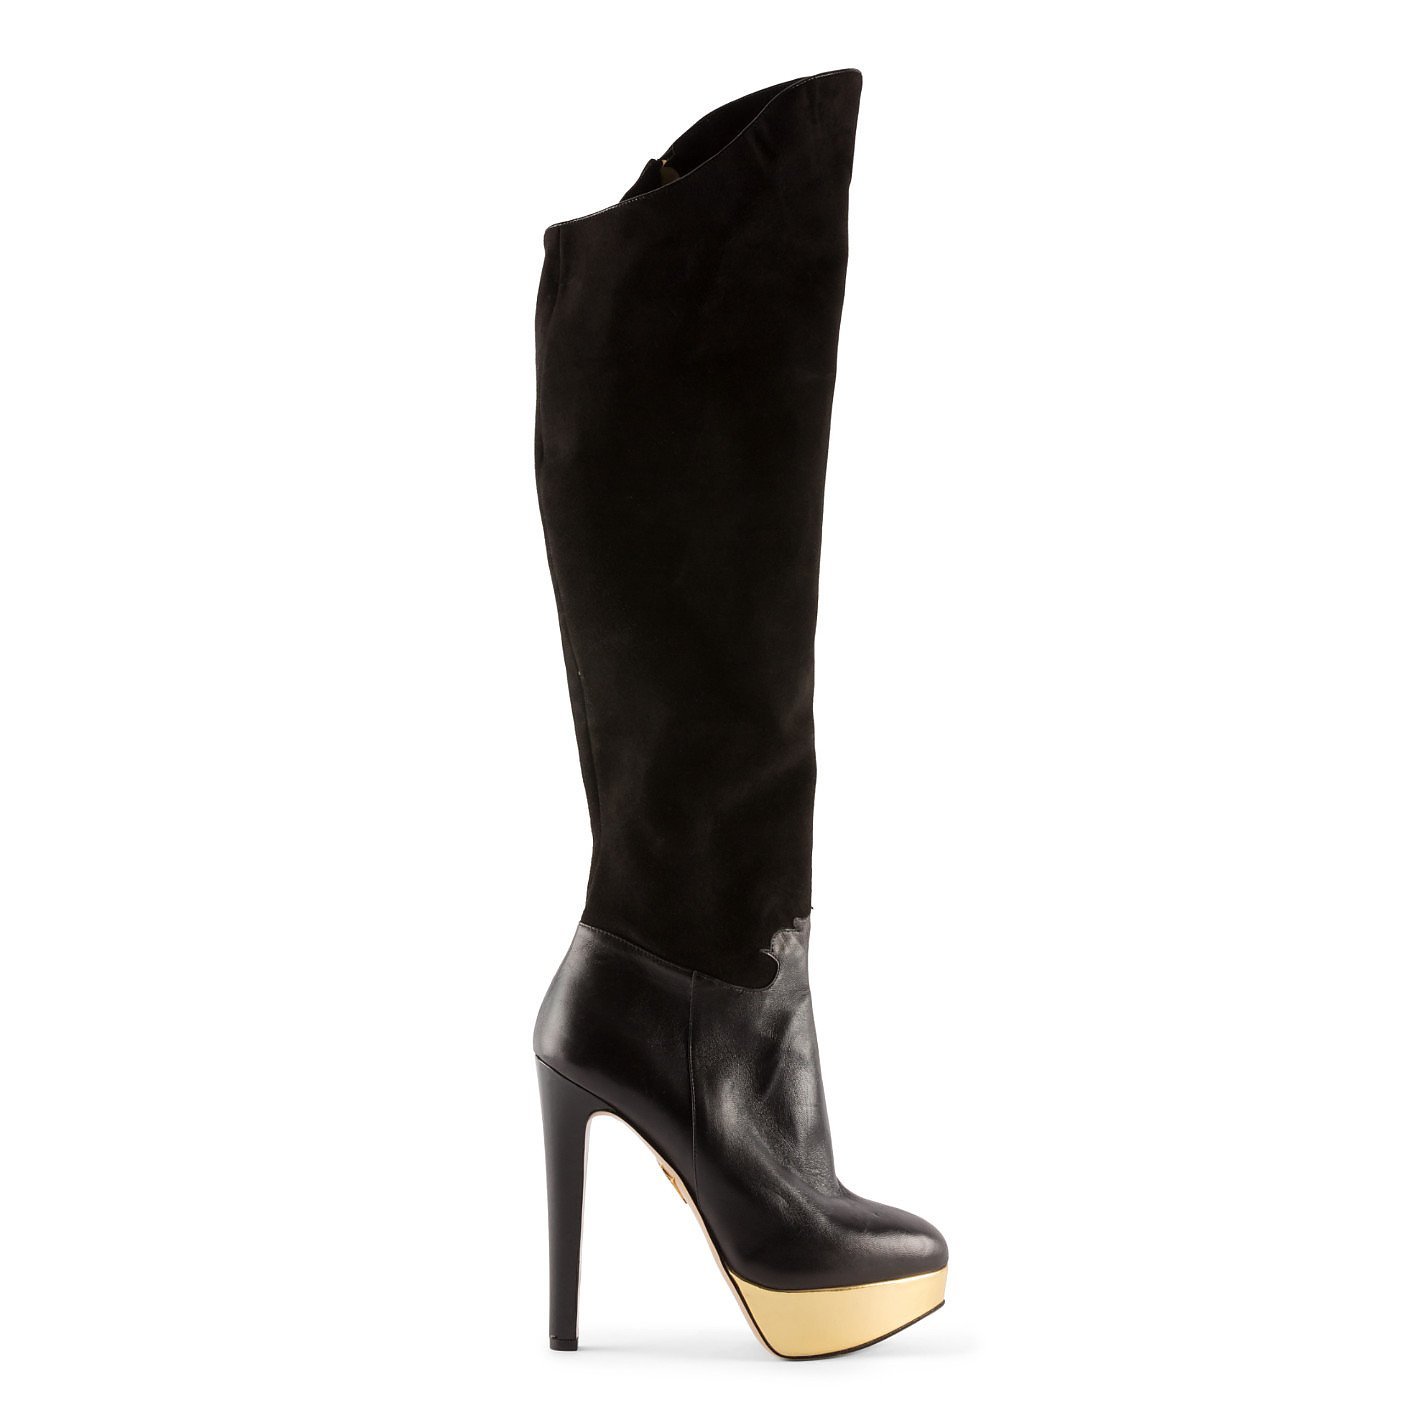 Charlotte Olympia Suede & Leather Heeled Platform Boots